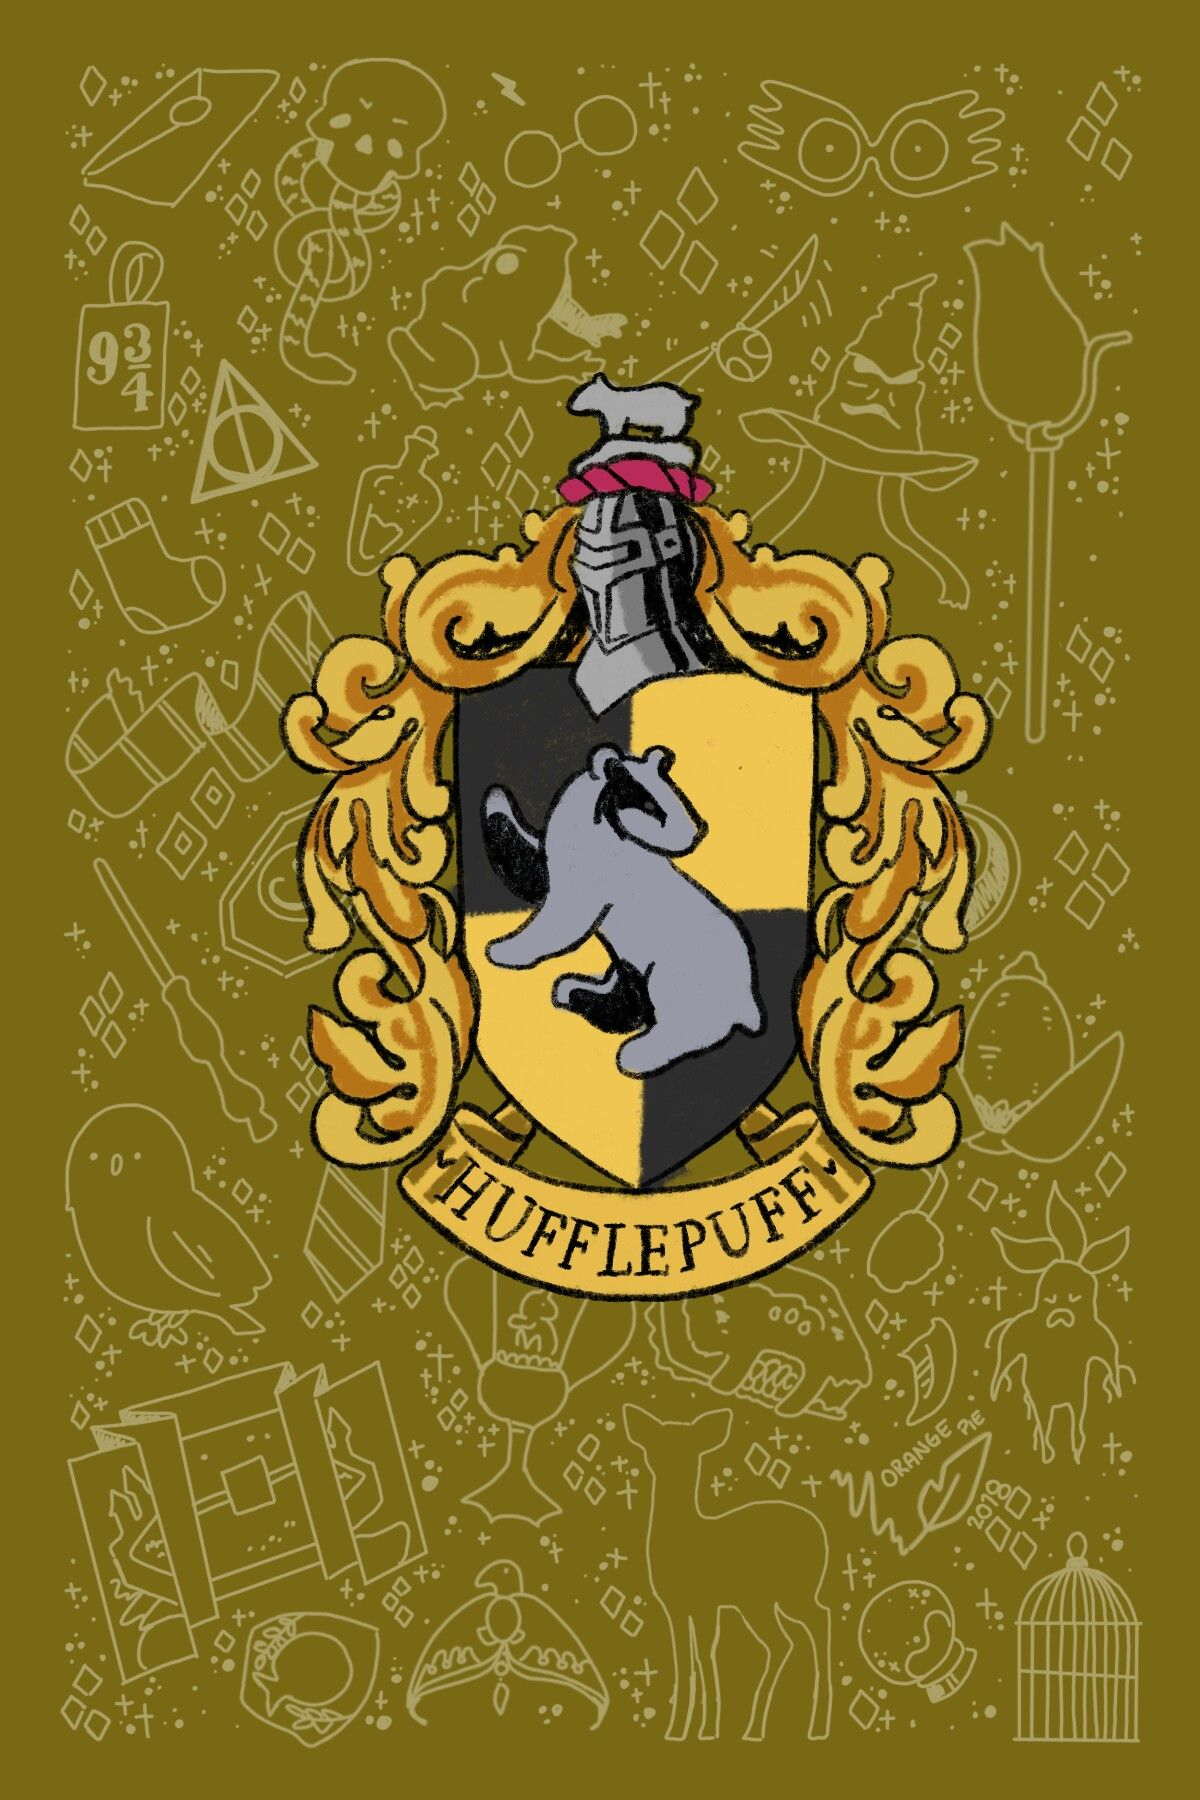 Pin By Elkisiello On Harry Potter Harry Potter Drawings Hufflepuff Wallpaper Harry Potter Wallpaper